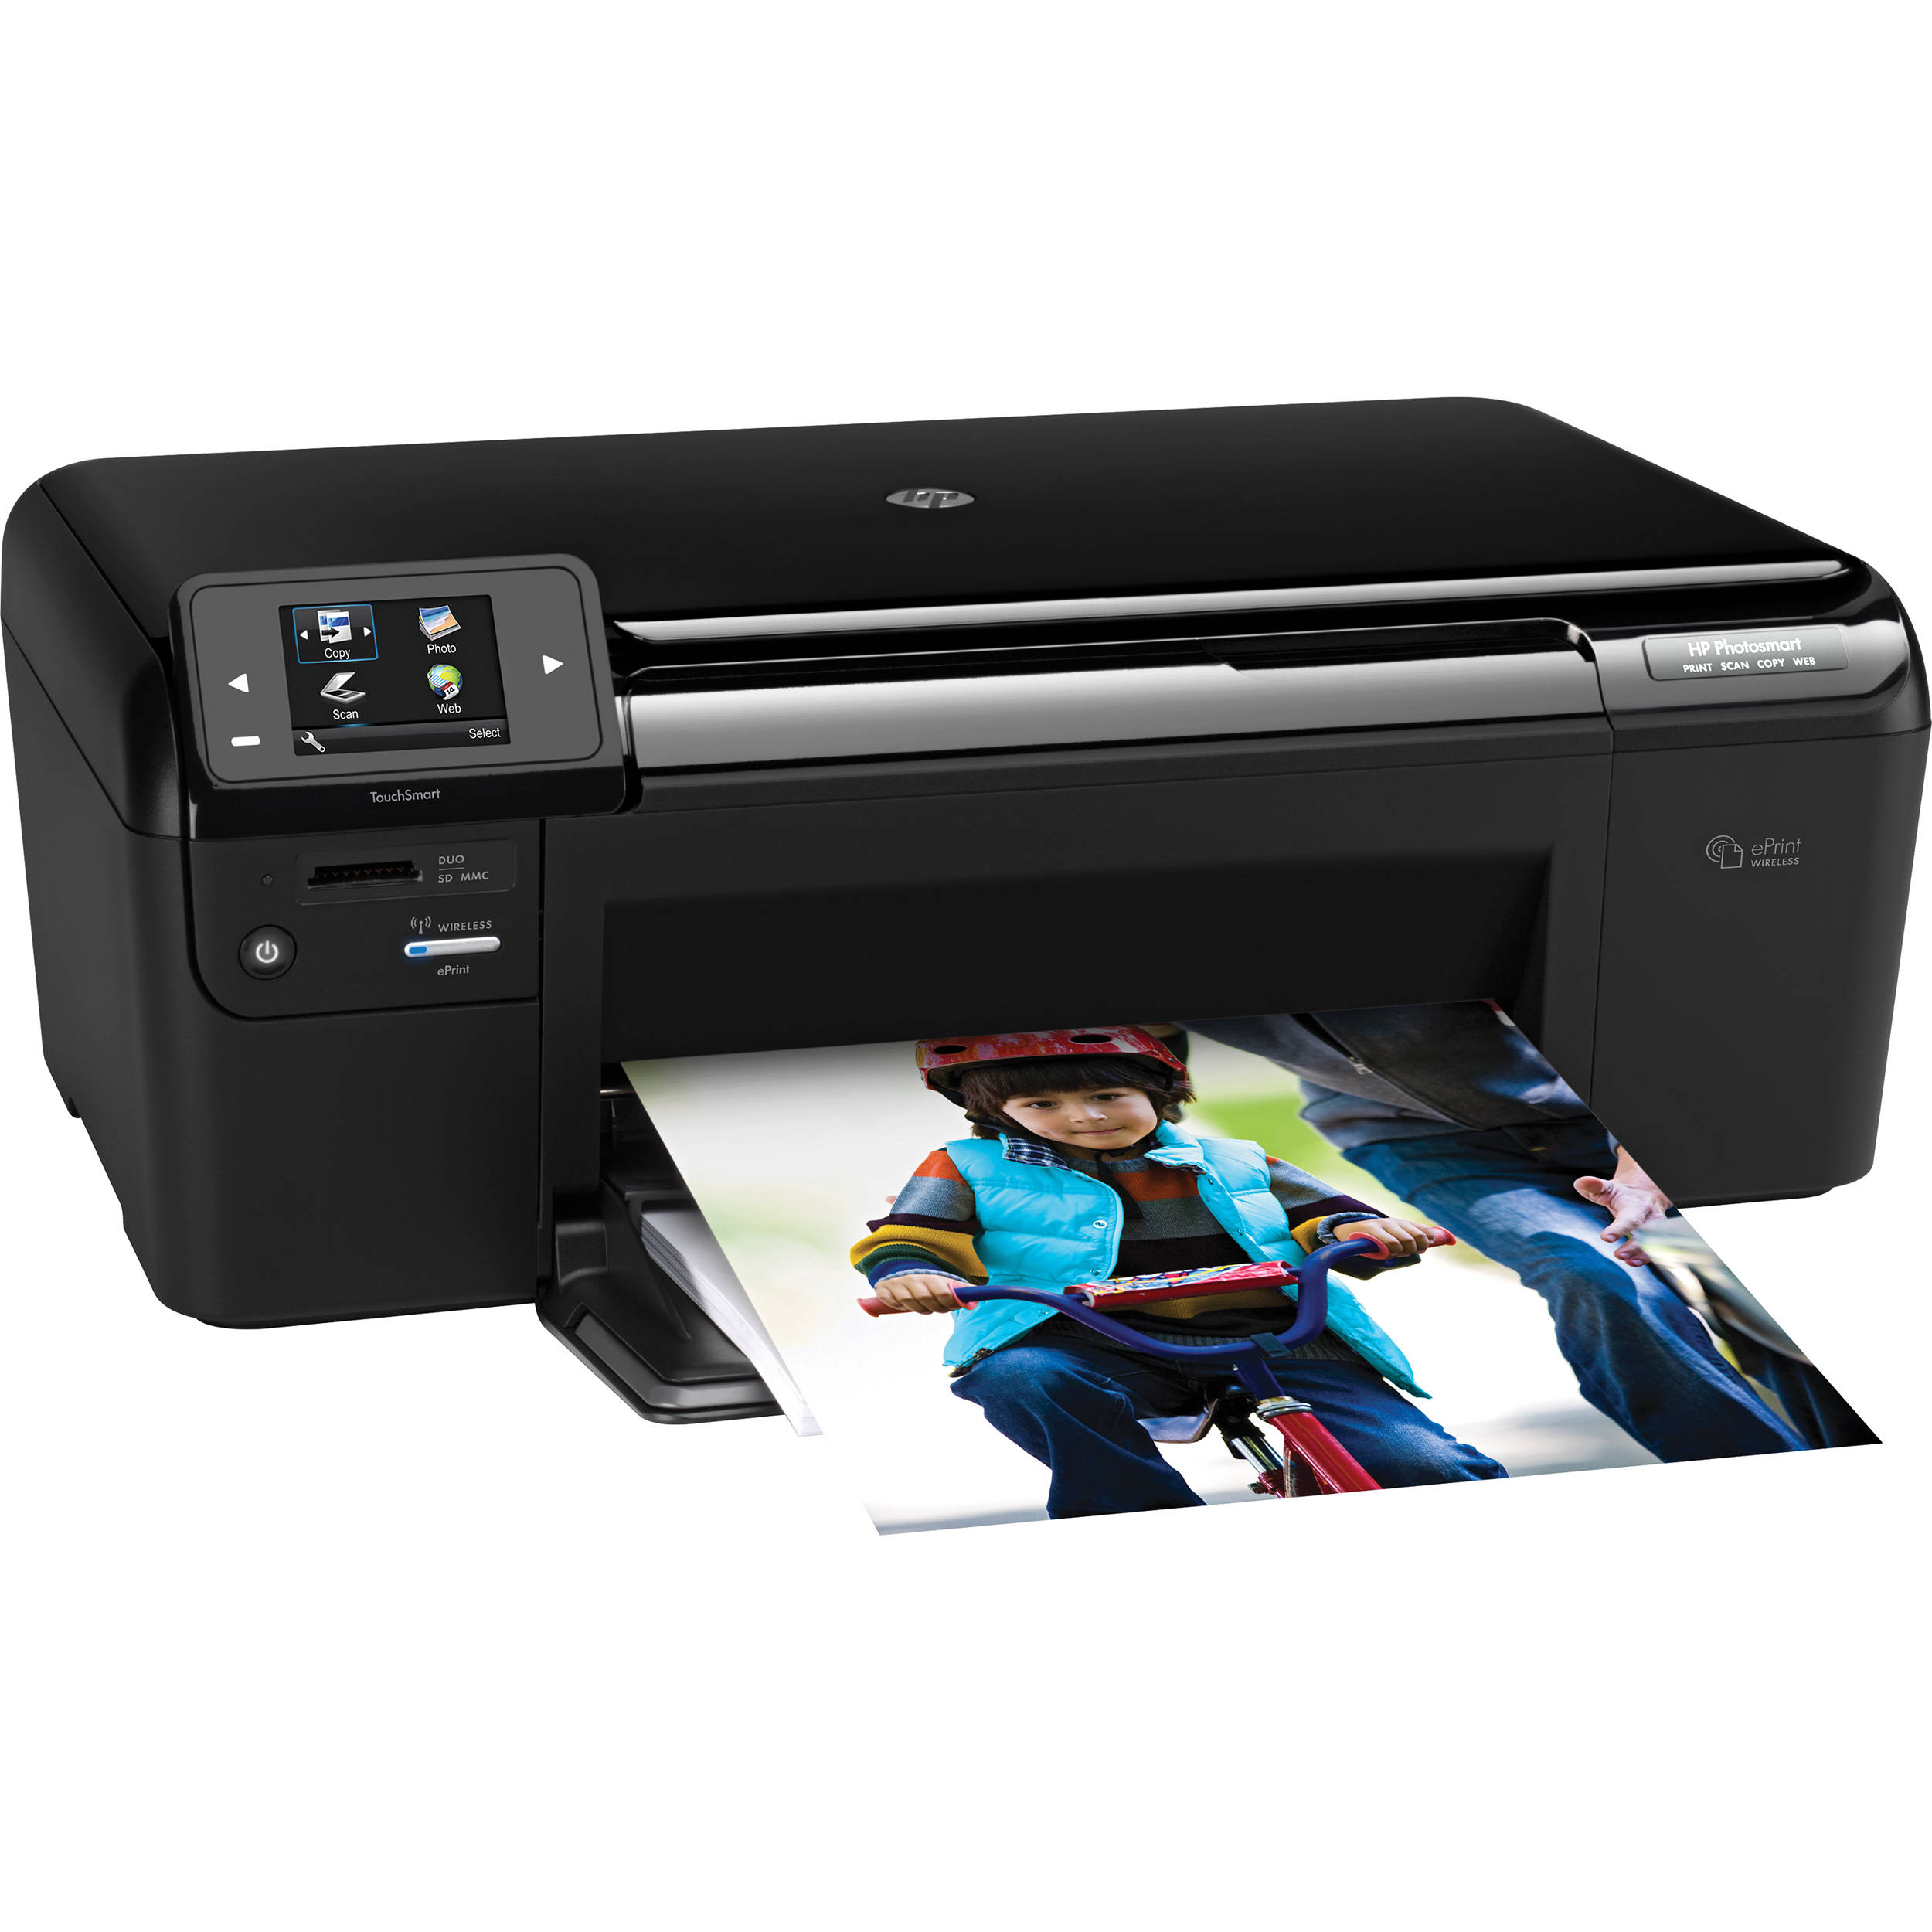 HP Photosmart D110A e-All-in-One Printer CN731A#B1H B&H Photo: www.bhphotovideo.com/c/product/713994-REG/HP_Hewlett_Packard_CN731A...